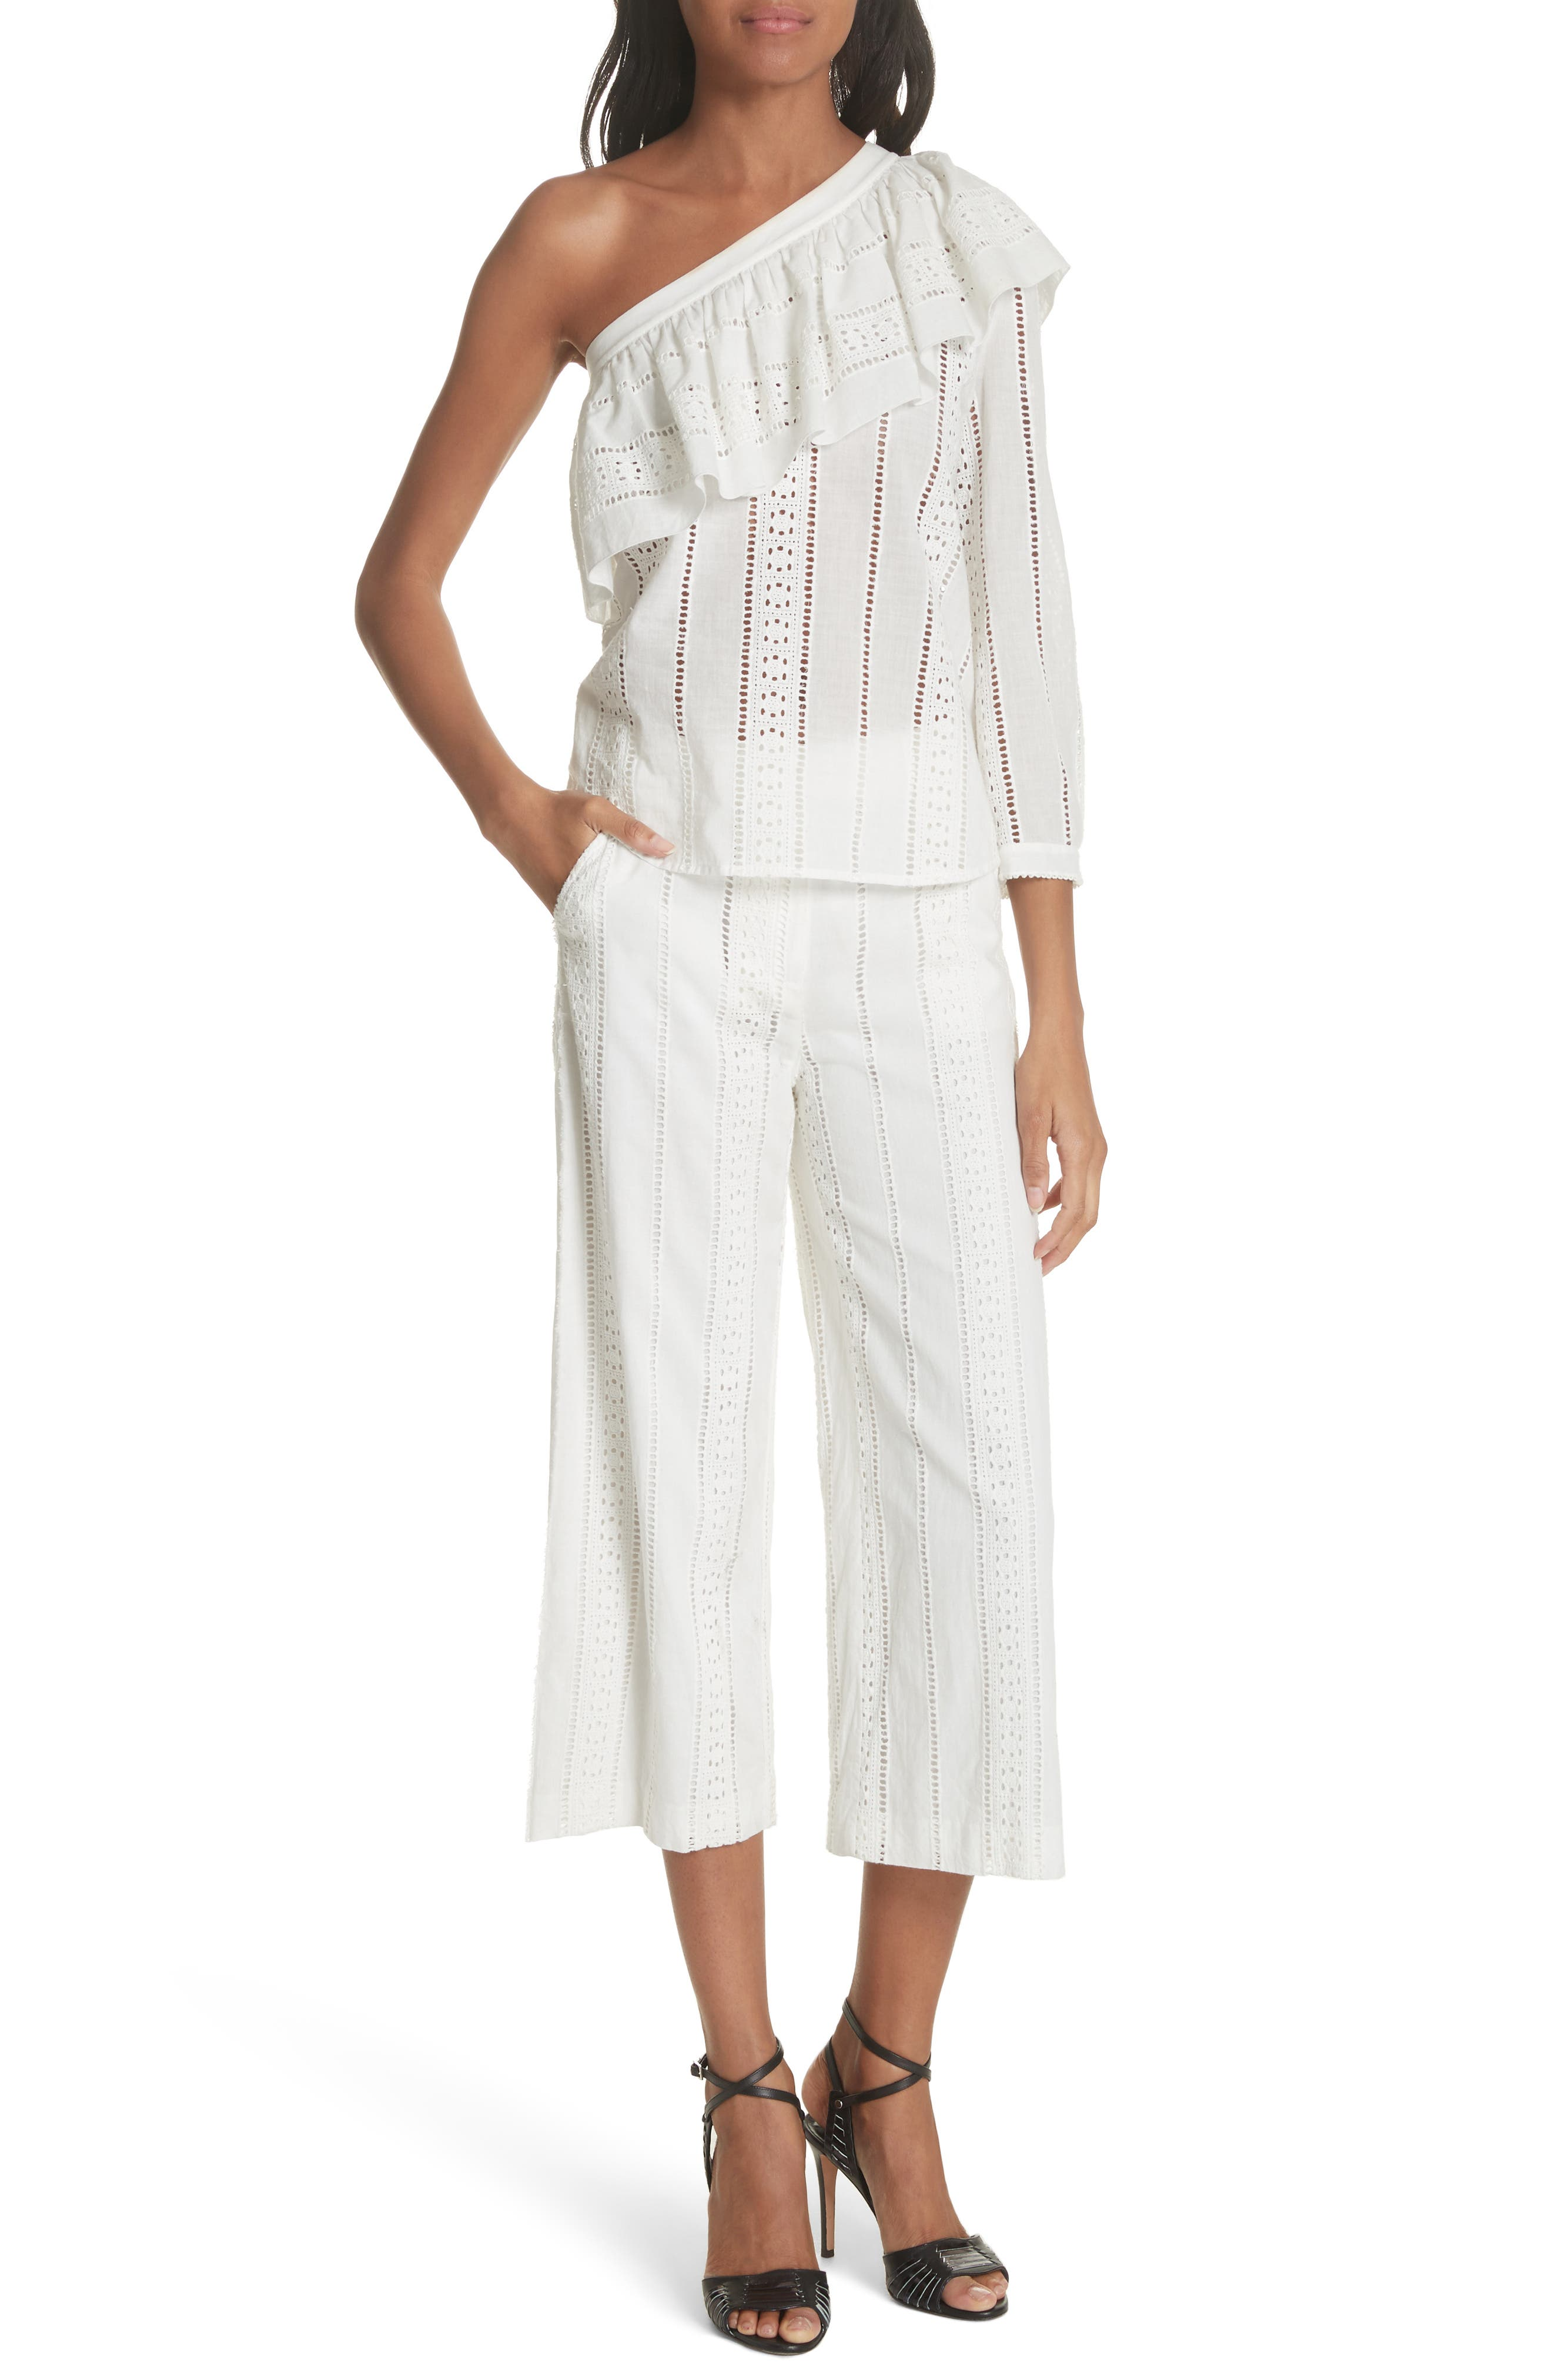 Leta Eyelet Gaucho Pants,                             Alternate thumbnail 7, color,                             White